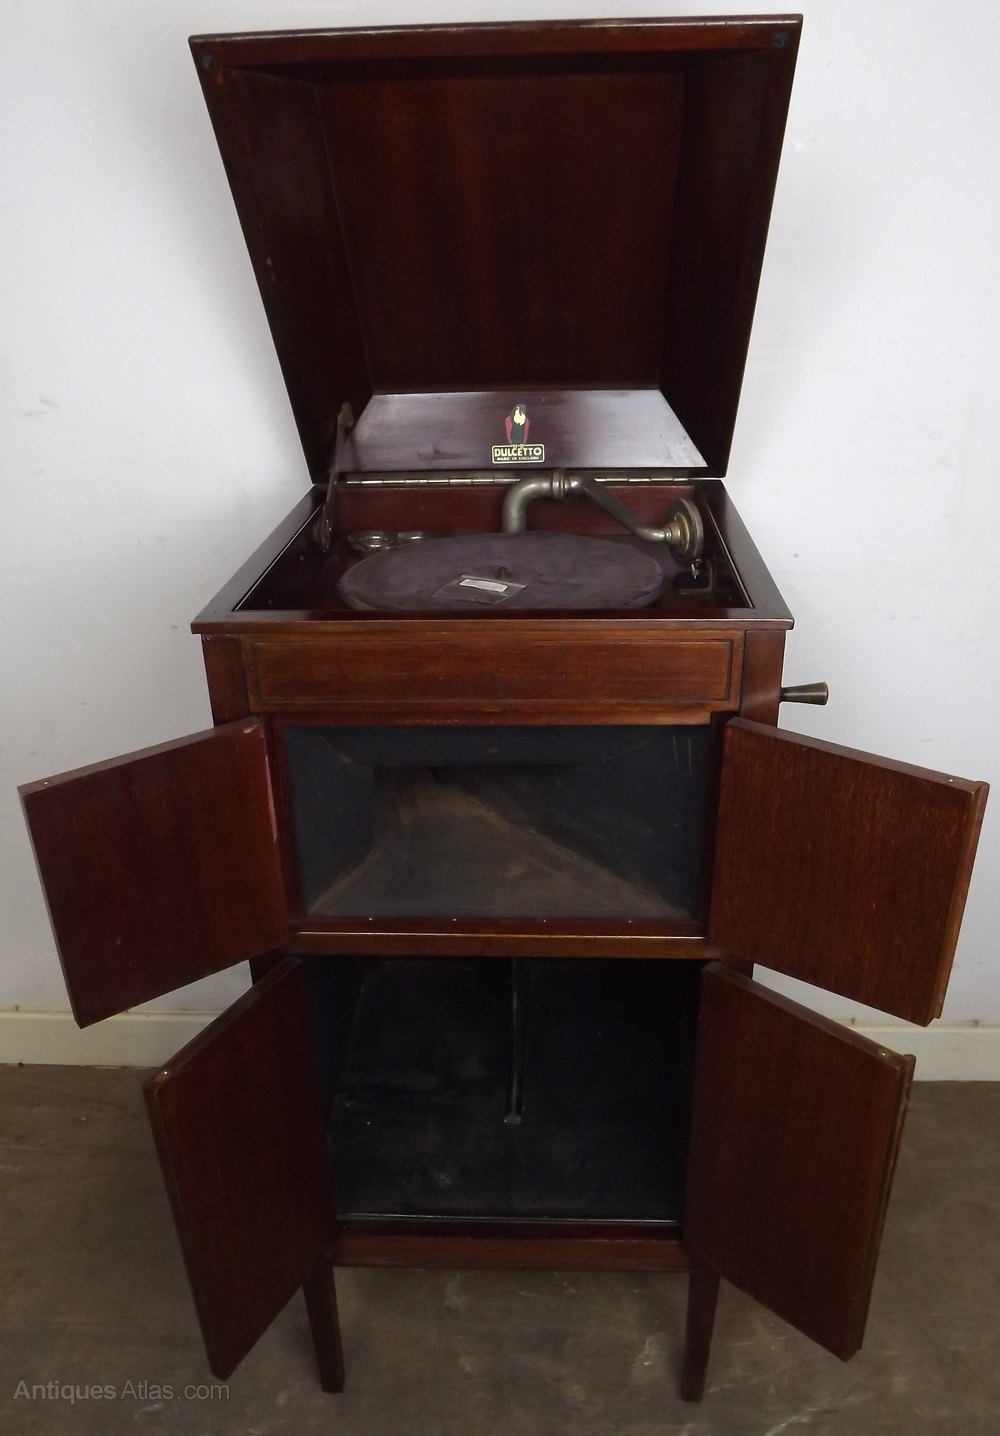 Vintage Dulcetto Mahogany-Cased Cabinet Gramophone Antique Gramophones ... - Antiques Atlas - Vintage Dulcetto Mahogany-Cased Cabinet Gramophone